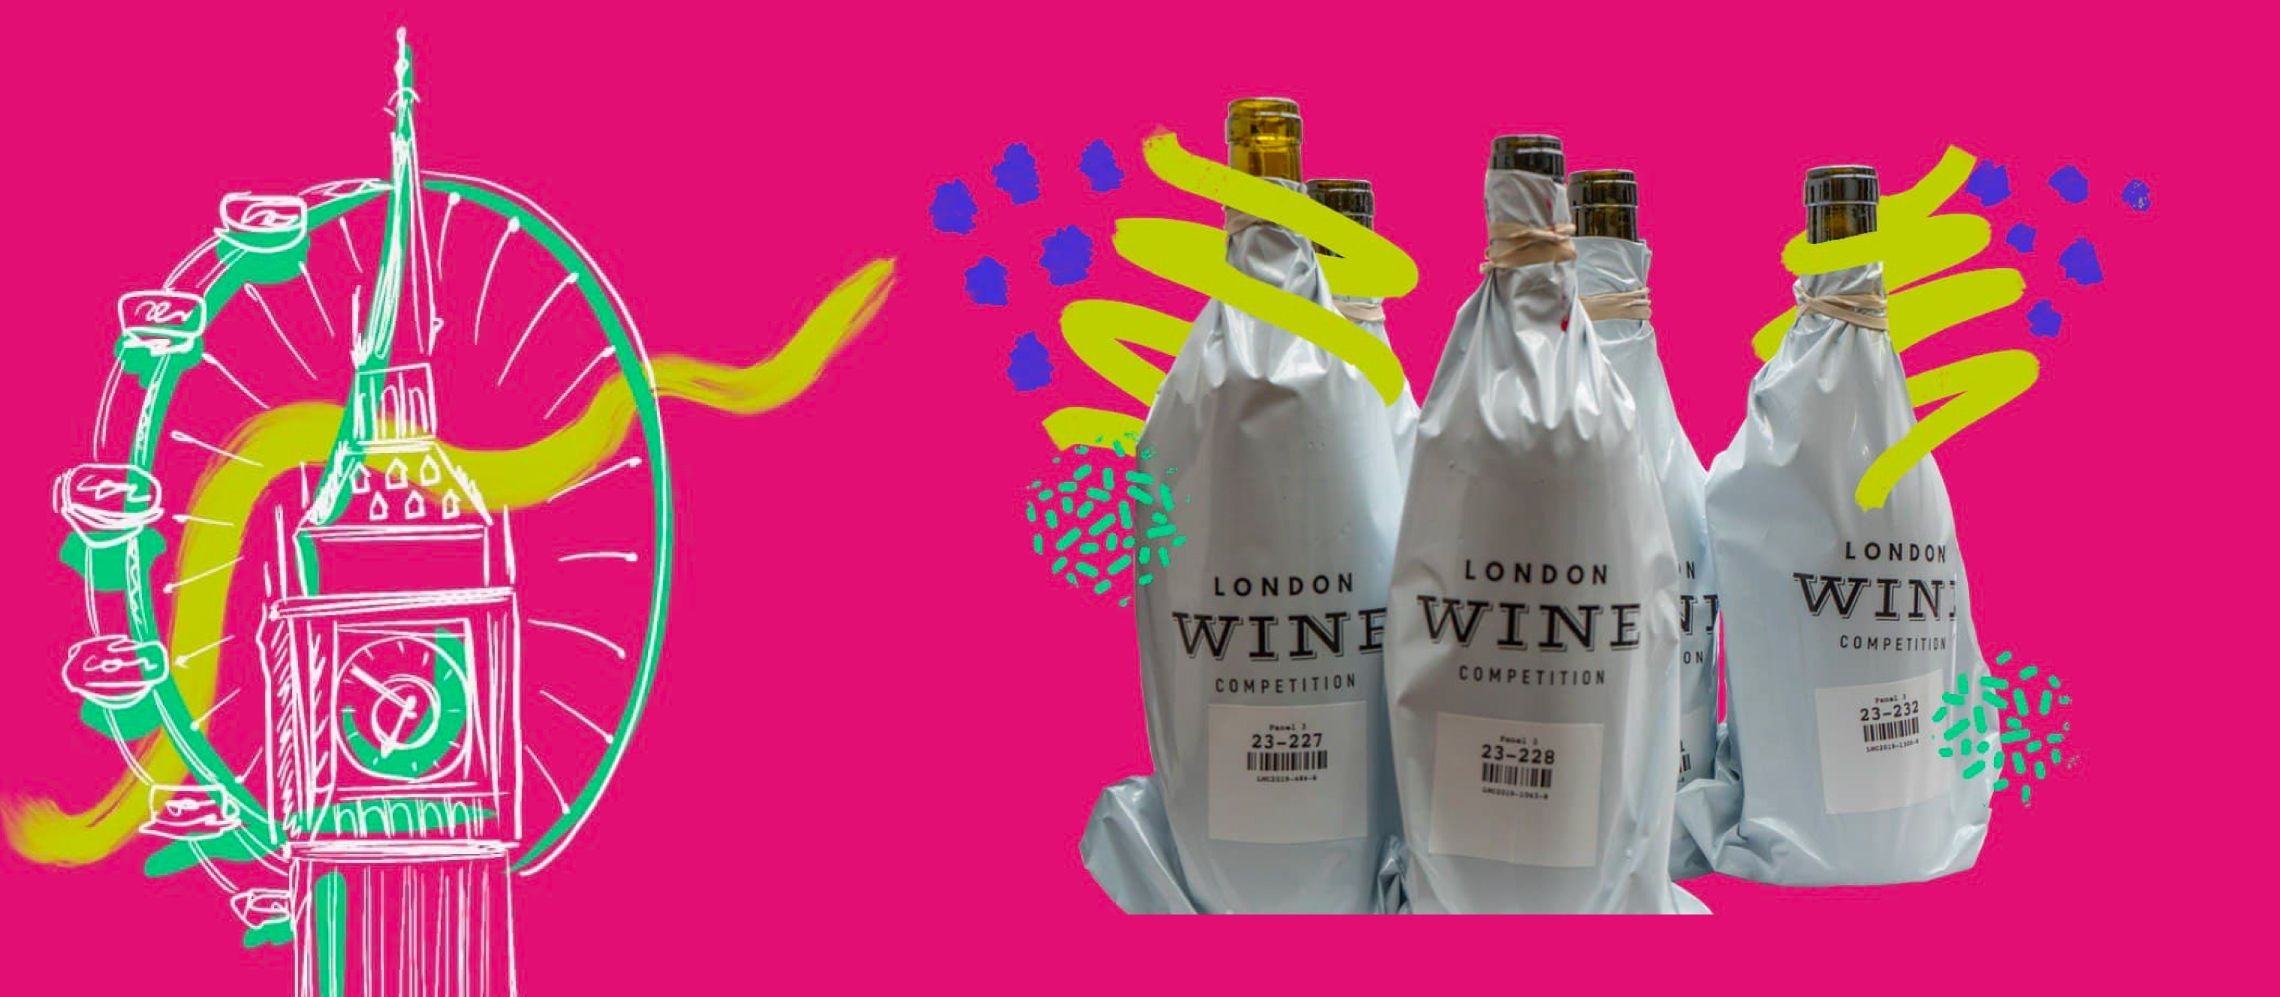 Photo for: London Wine Competition Winners to be Promoted in the London Drinks Guide